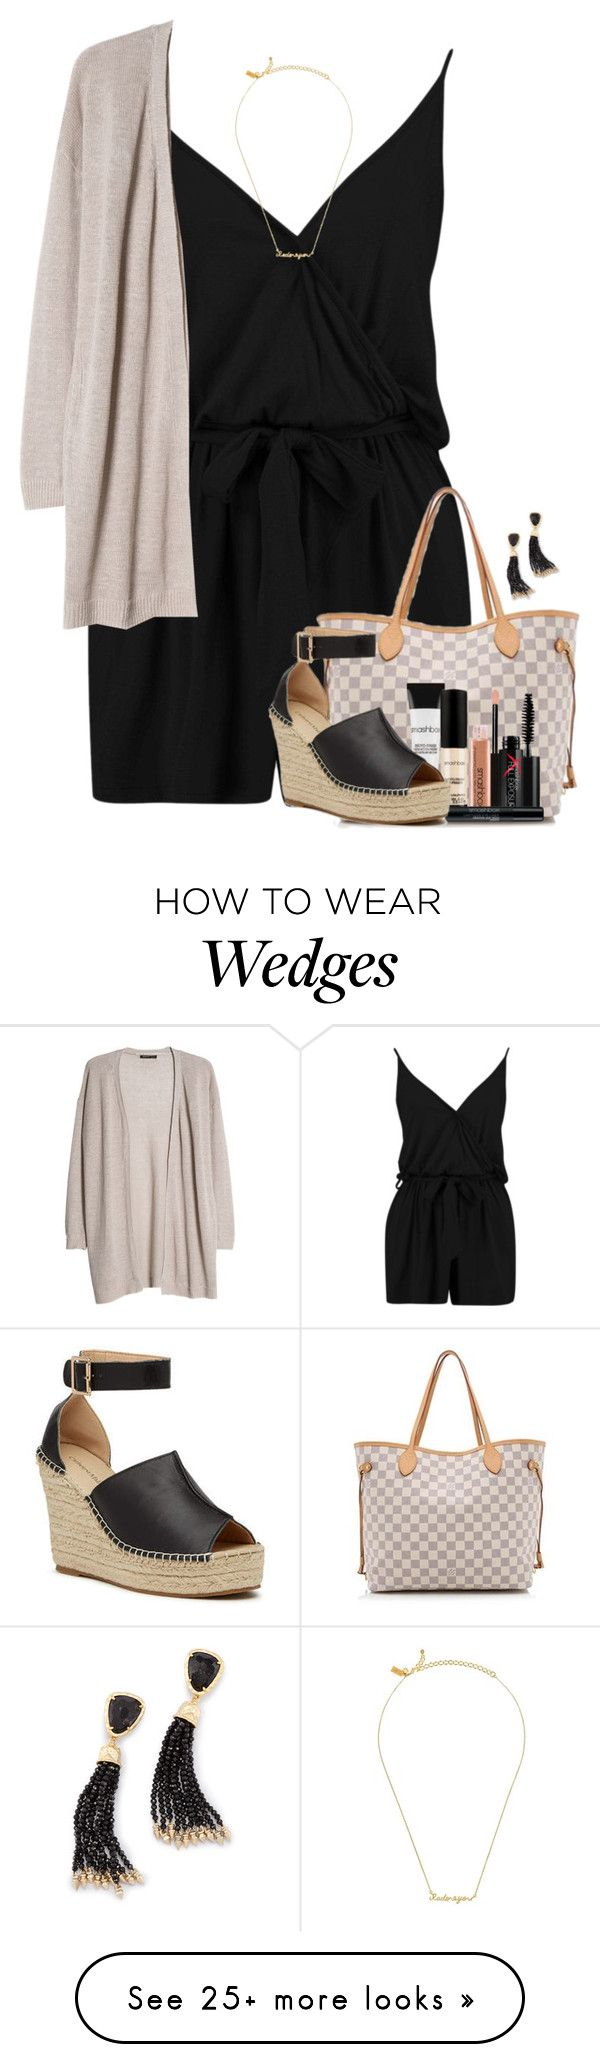 """I LOVE YOU."" by amberfmillard-1 on Polyvore featuring Boohoo, Kate Spade, MANGO, Louis Vuitton, Smashbox and Kendra Scott"